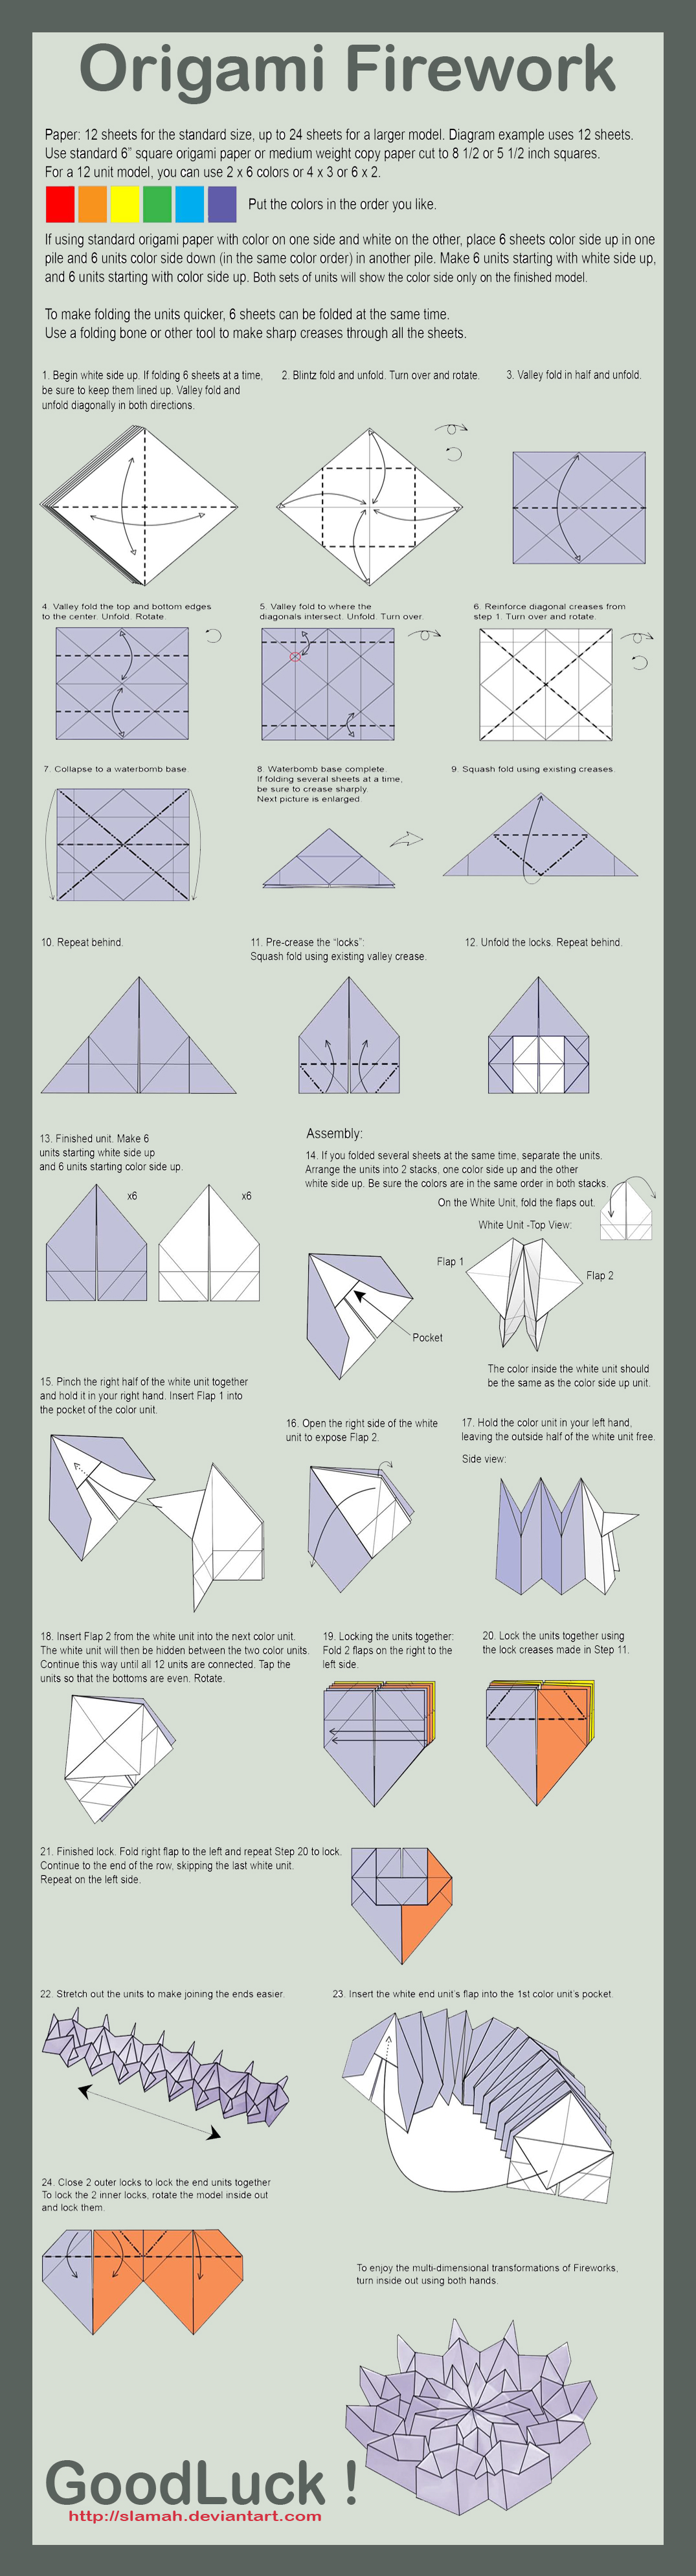 origami firework folding instructions origami instruction [ 1075 x 3980 Pixel ]